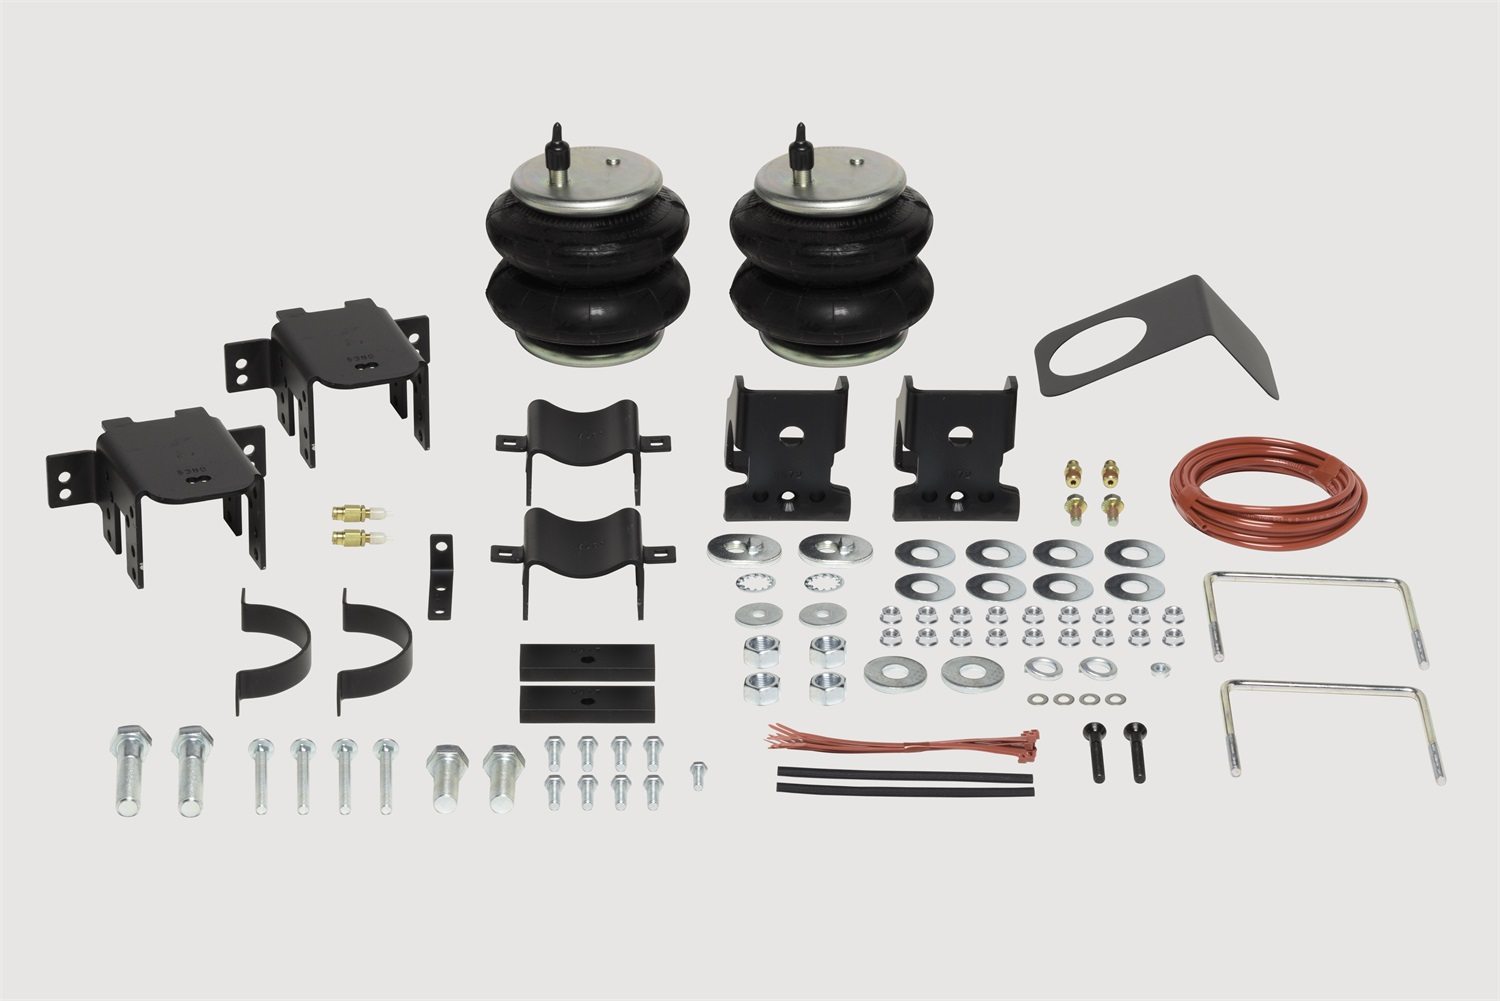 Ride-Riter Air Helper Spring Kit, Rear, Incl. Brackets, Air Helper Springs, Hardware, Air Line, And Inflation Valves, No Drilling Req, Superseded To PN [2597]